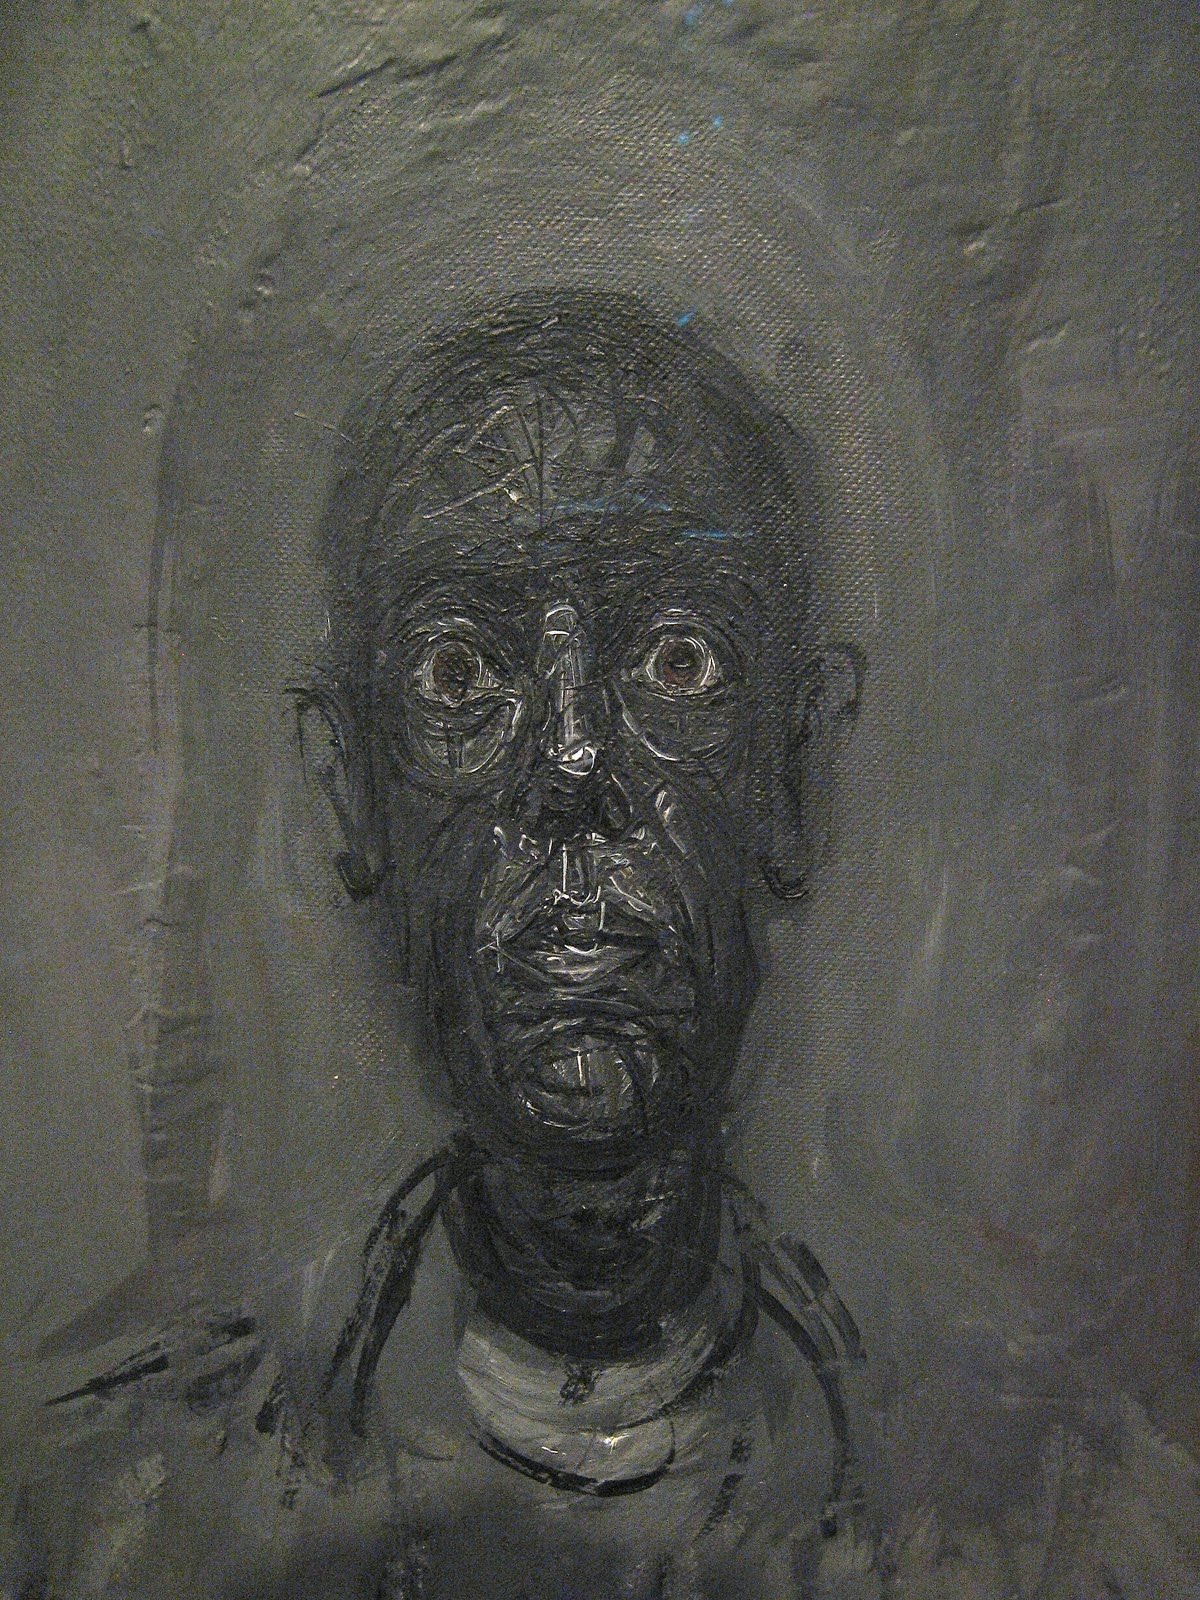 Ken's Visual Art Blog: The Struggle for Reality: Giacometti and the Impossible Real